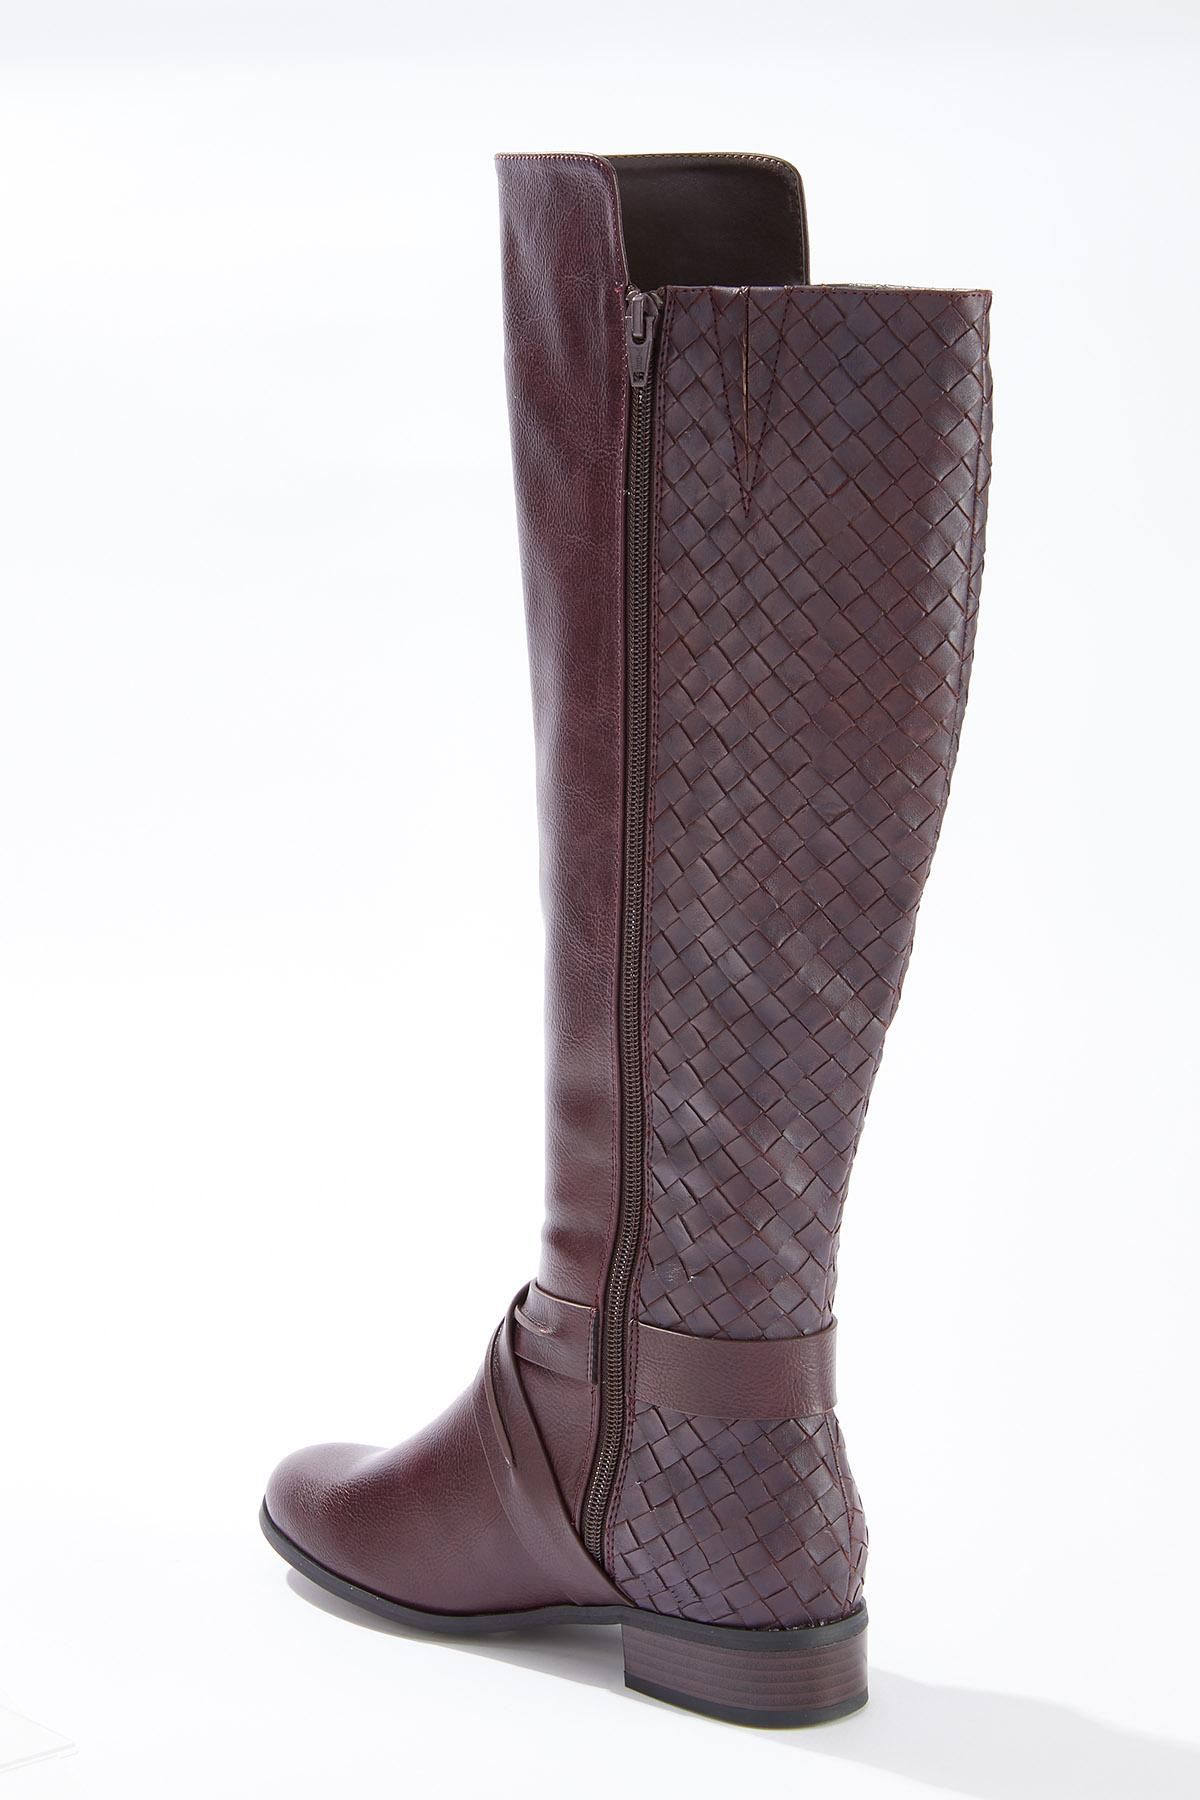 Wide Width Woven Effect Riding Boots (Item #44713850)